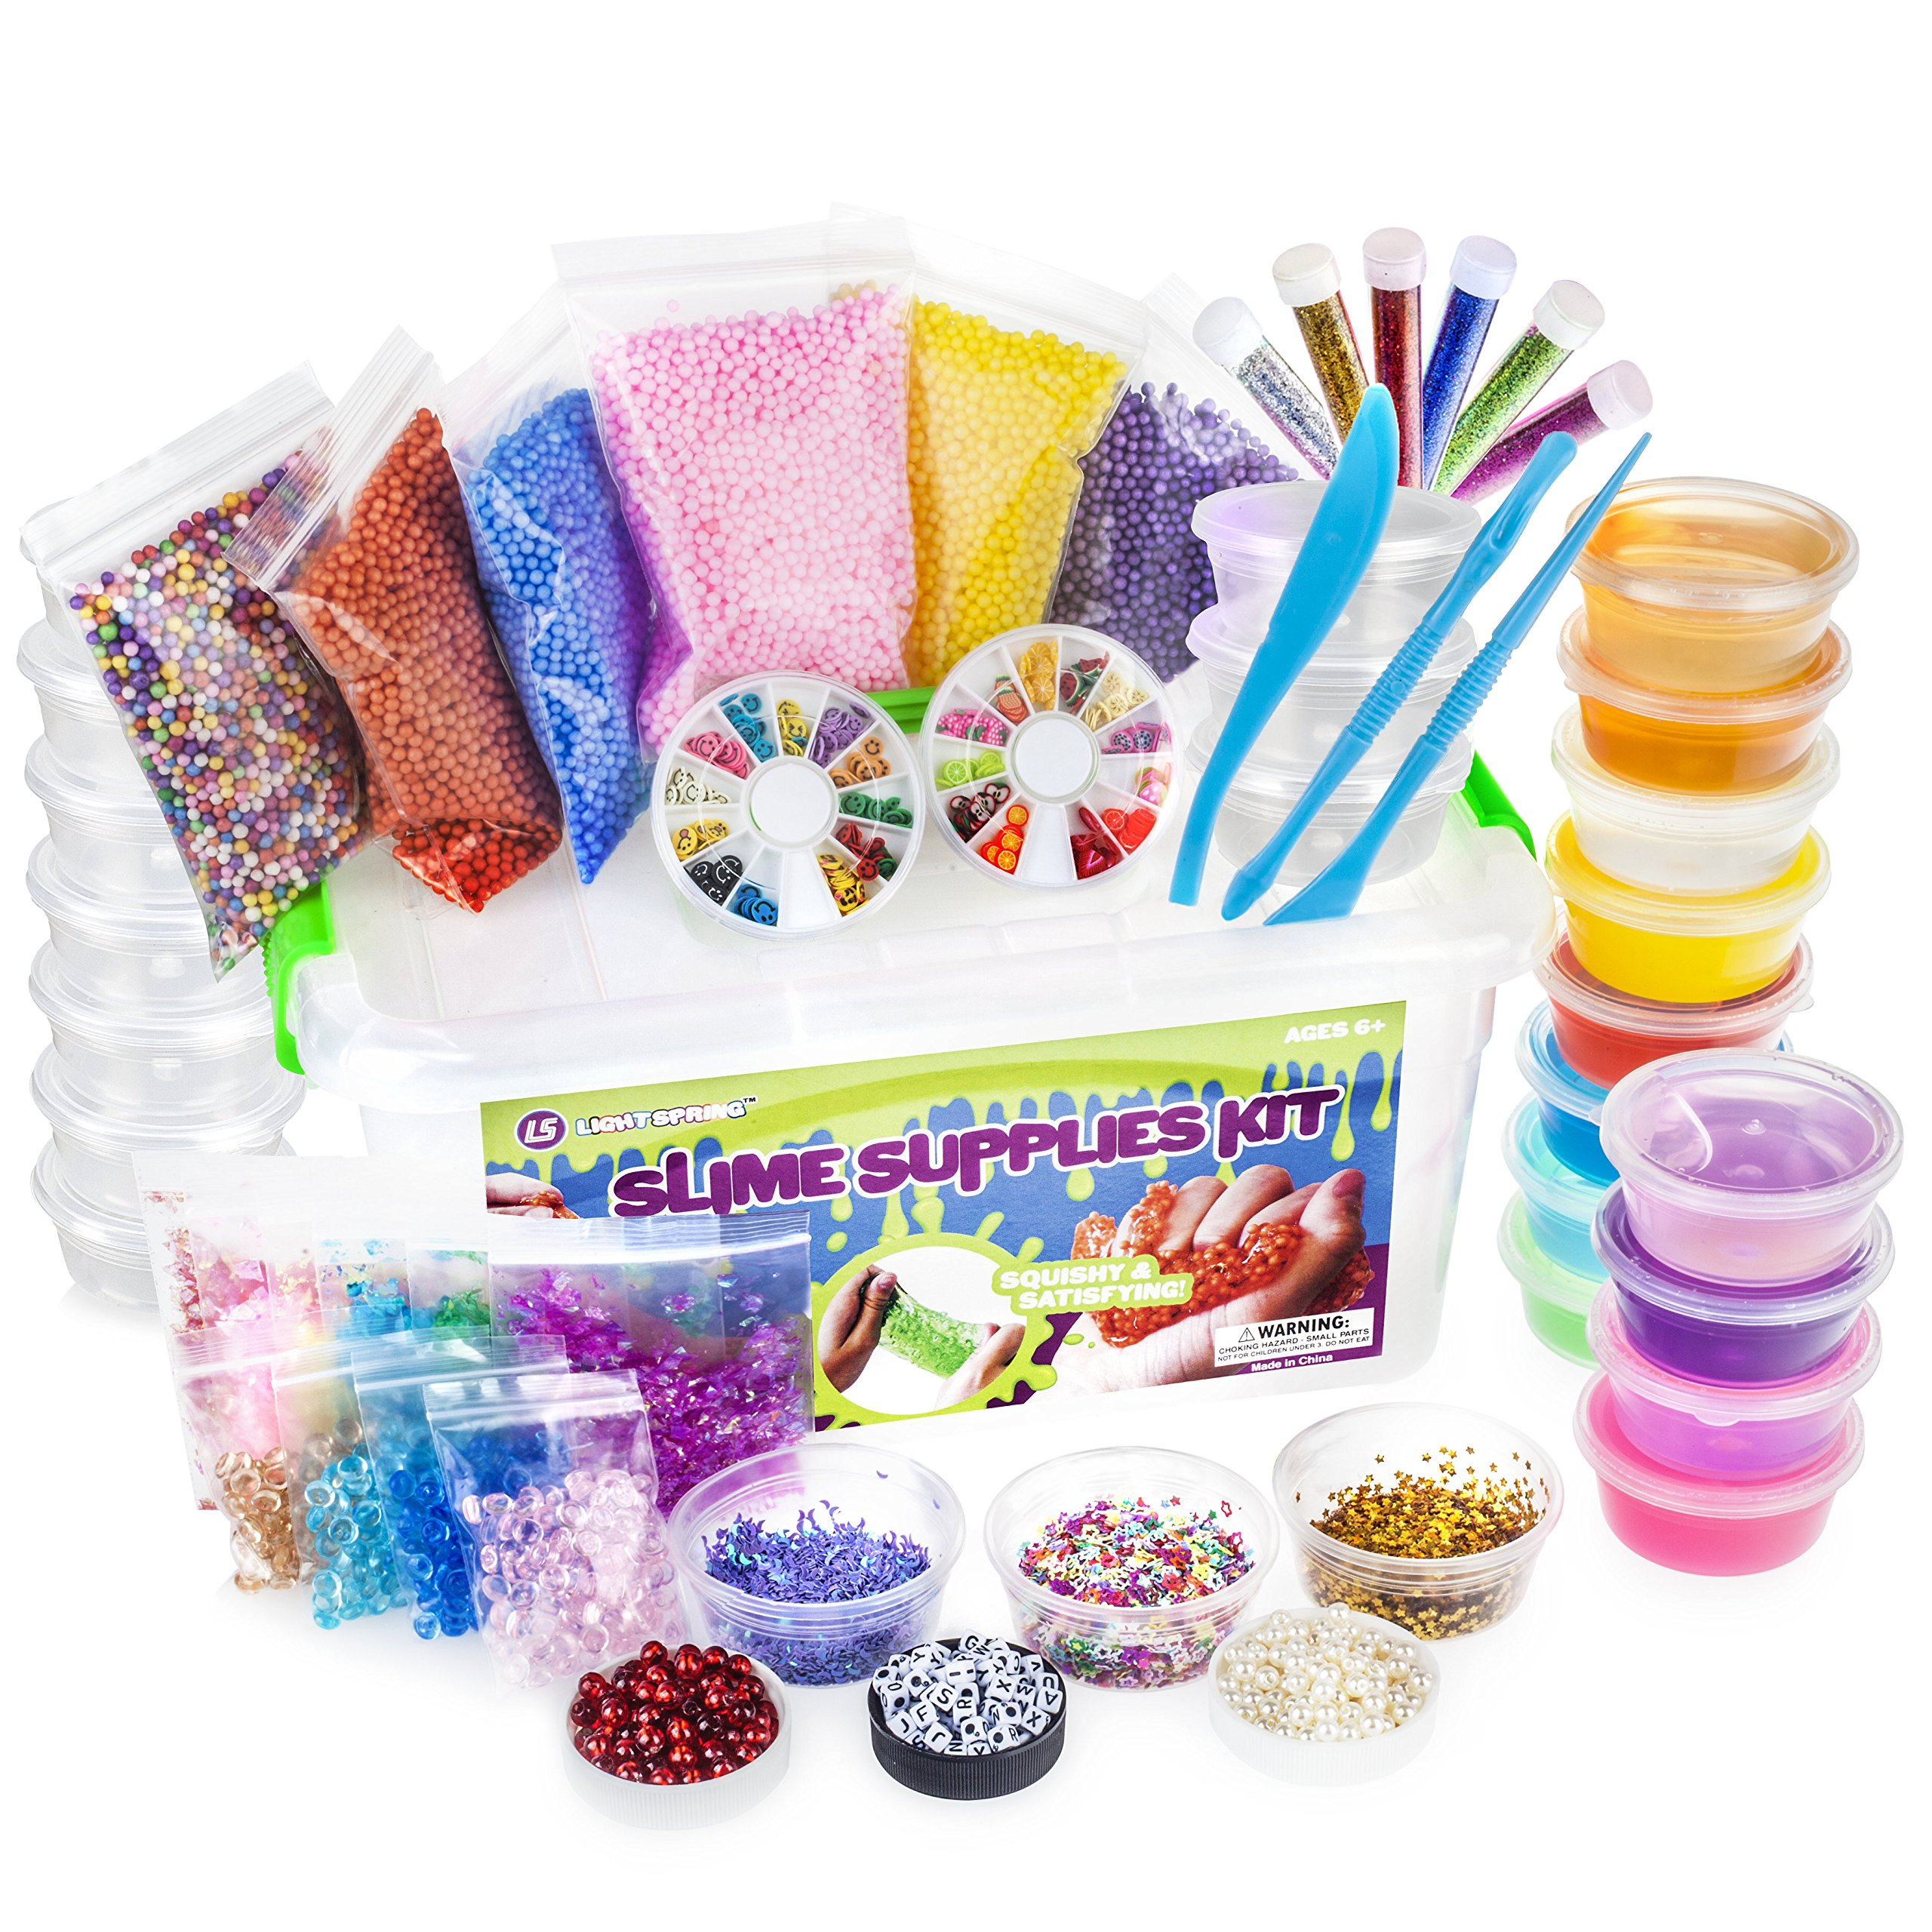 LightSpring DIY Slime Supplies Kit - 55 Pack for Girls & Boys | 12 Colorful Clear Slime, 10 Bonus Containers, Plus Add Ins in Storage Case | Crystal Putty Toy Set | Water Based Stress Toys for Kids